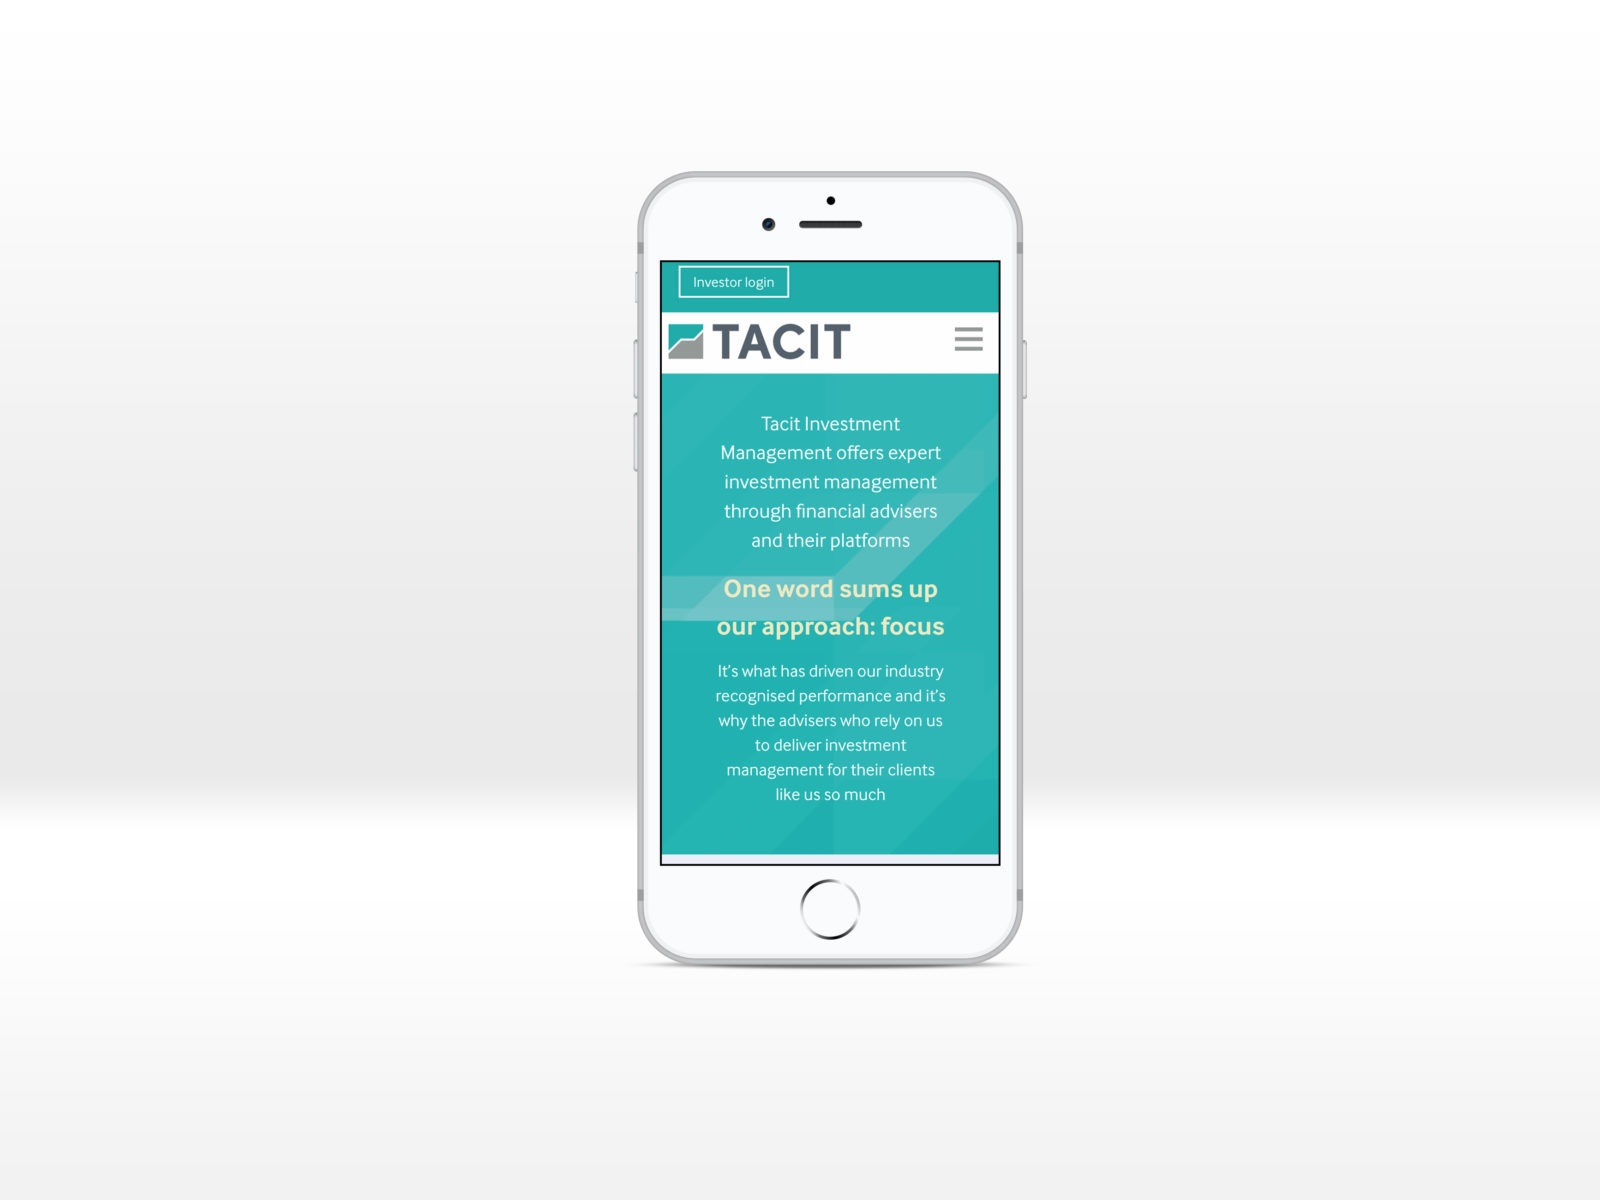 Tacit homepage displayed on a iPhone